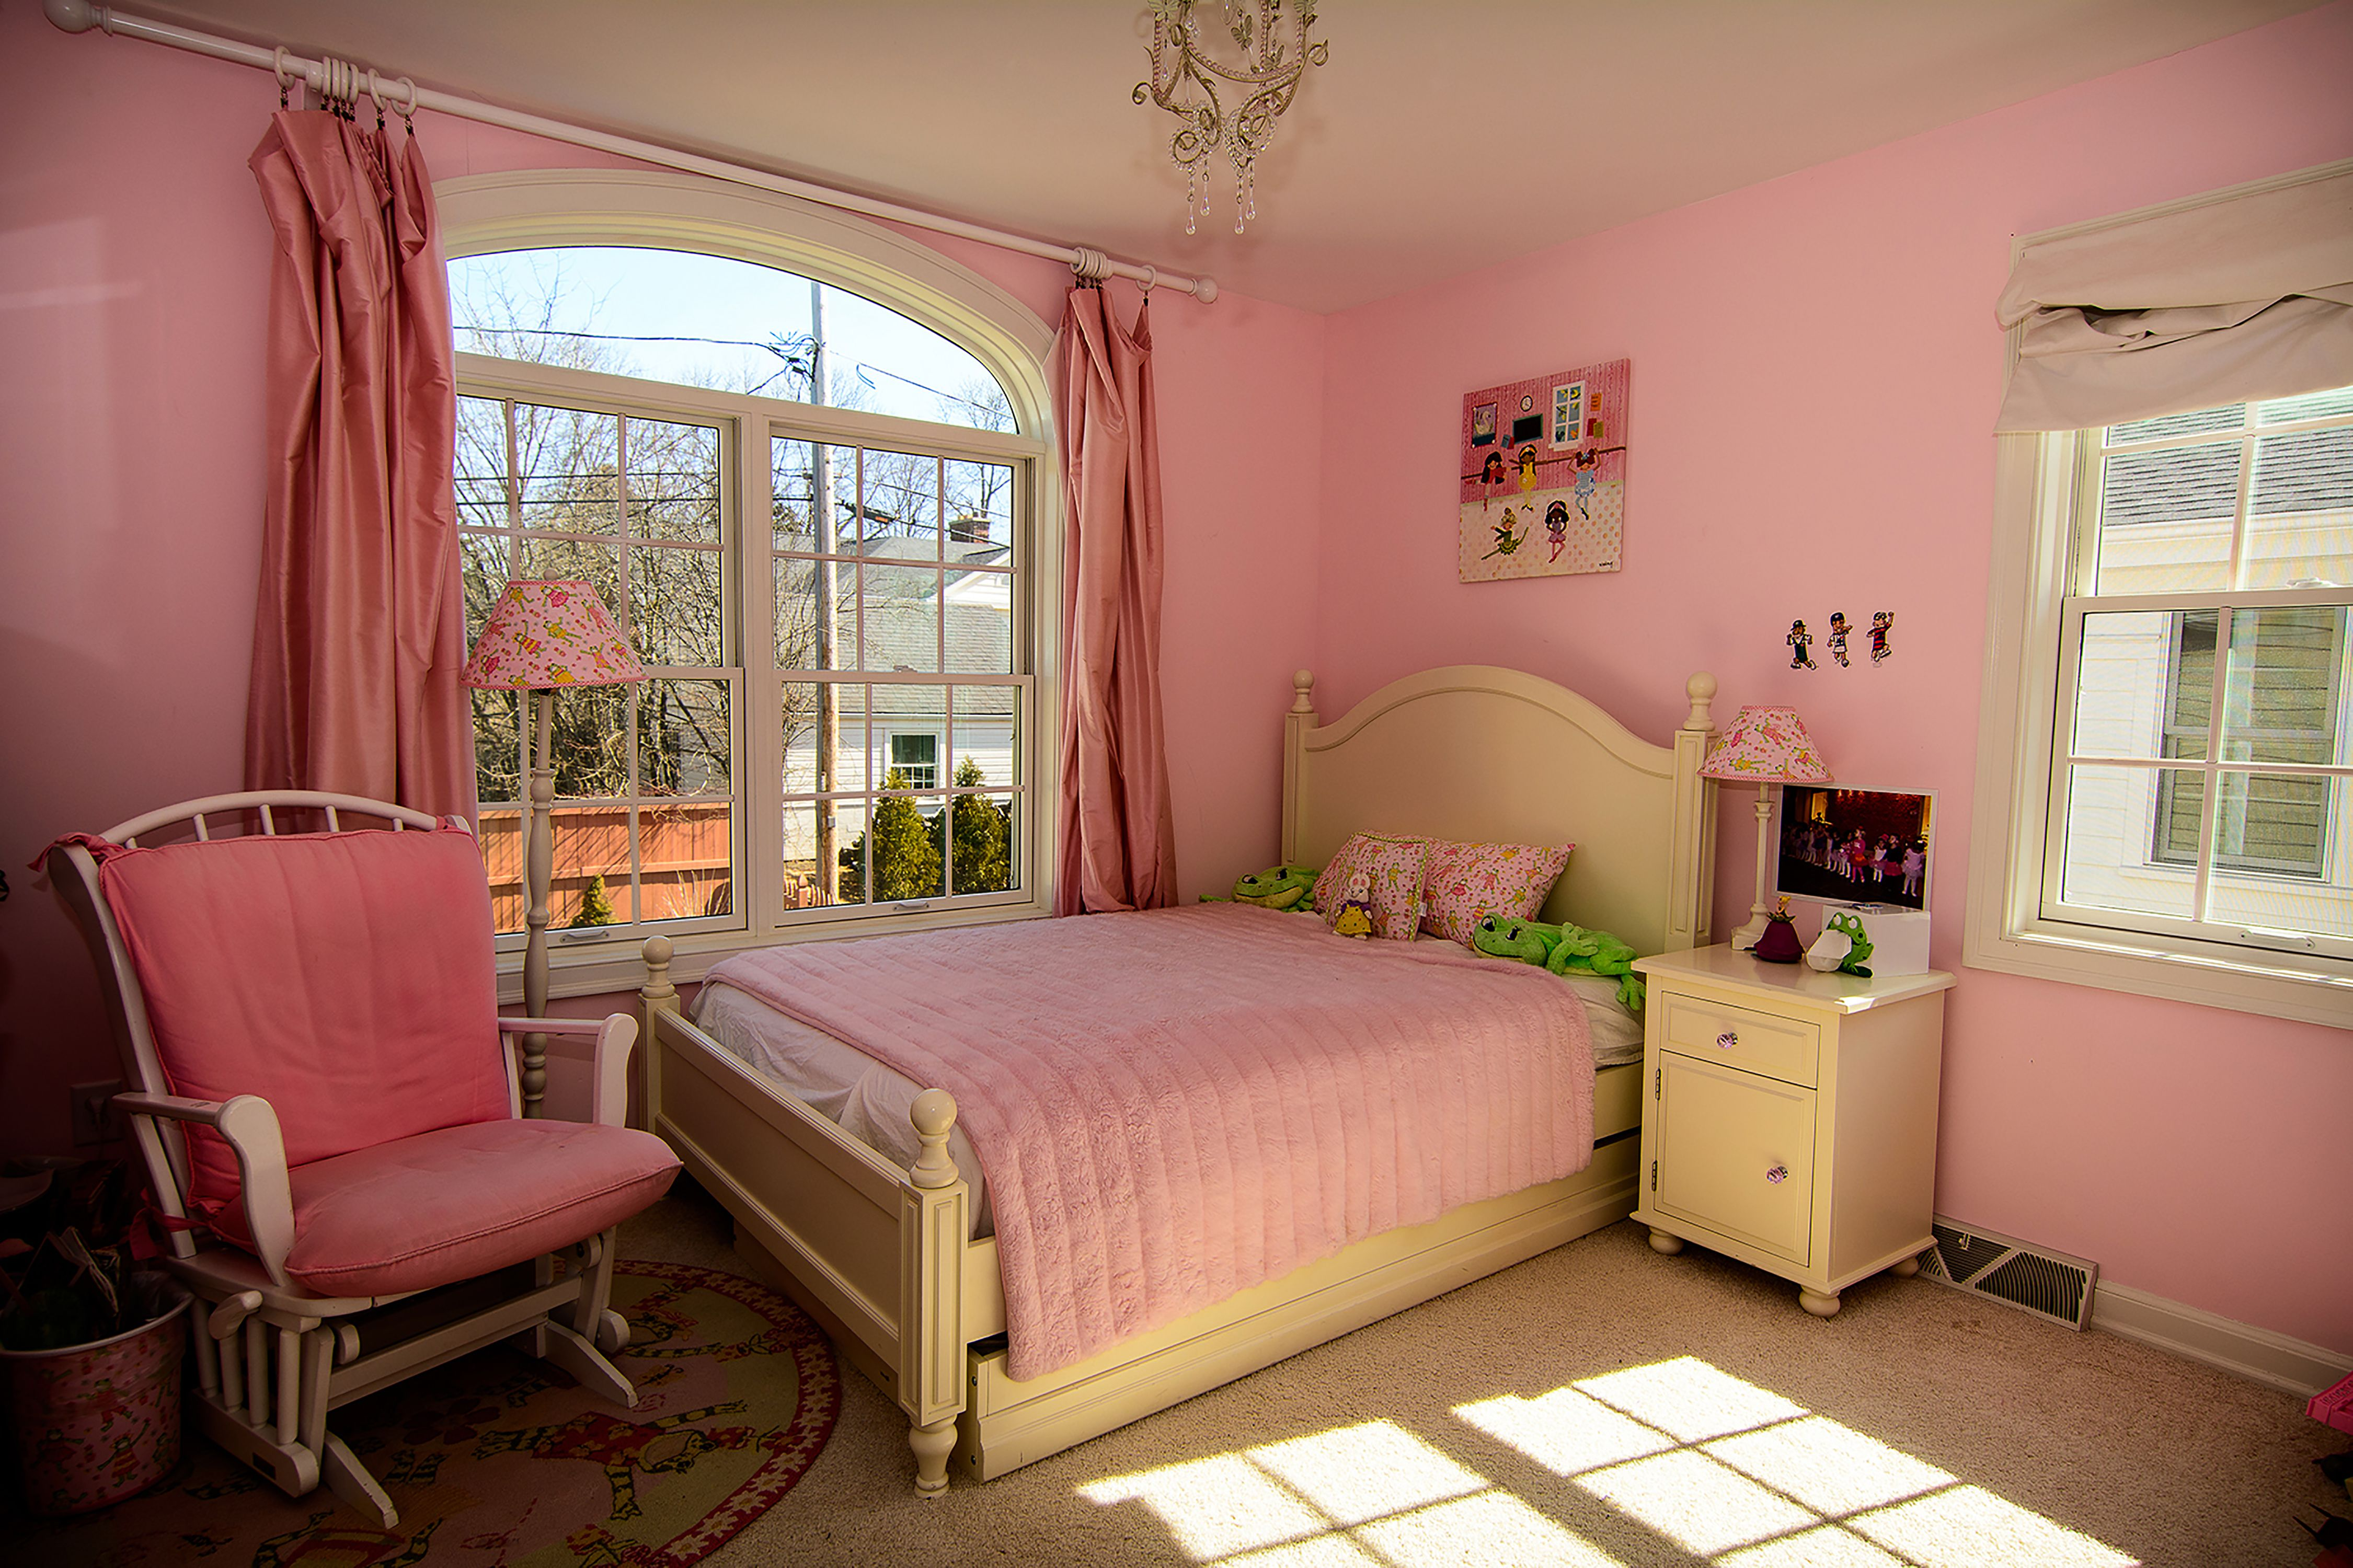 WHITEFISH BAY CHILDS BEDROOM REMODEL